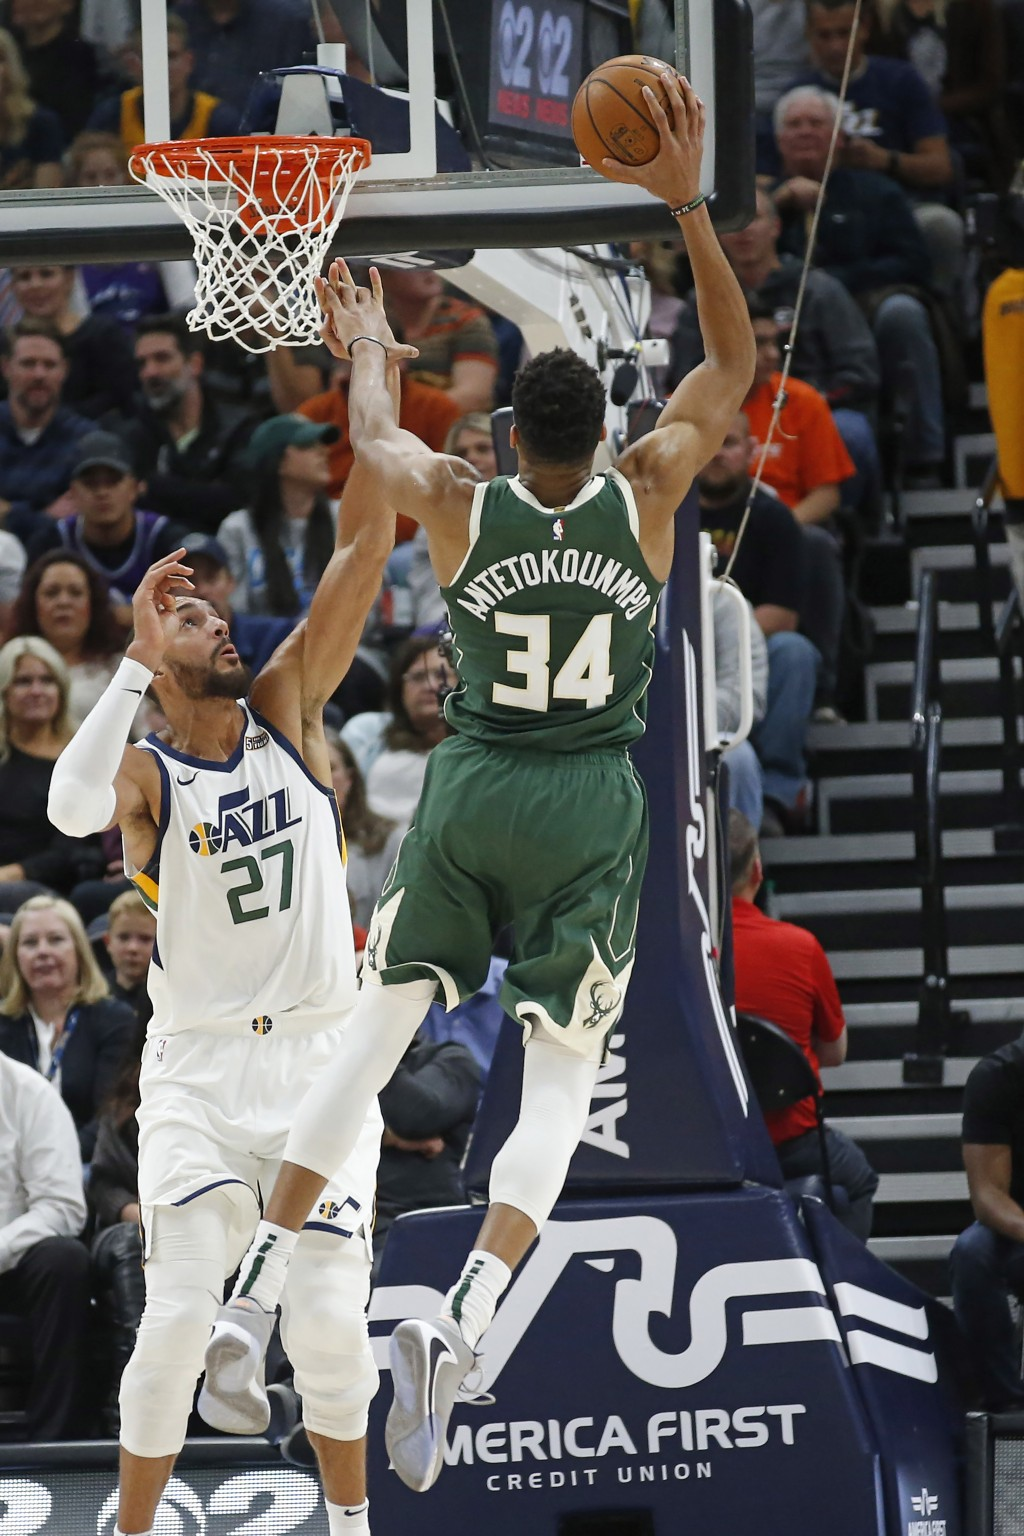 Utah Jazz center Rudy Gobert (27) defends against Milwaukee Bucks forward Giannis Antetokounmpo (34) during the first half of an NBA basketball game F...